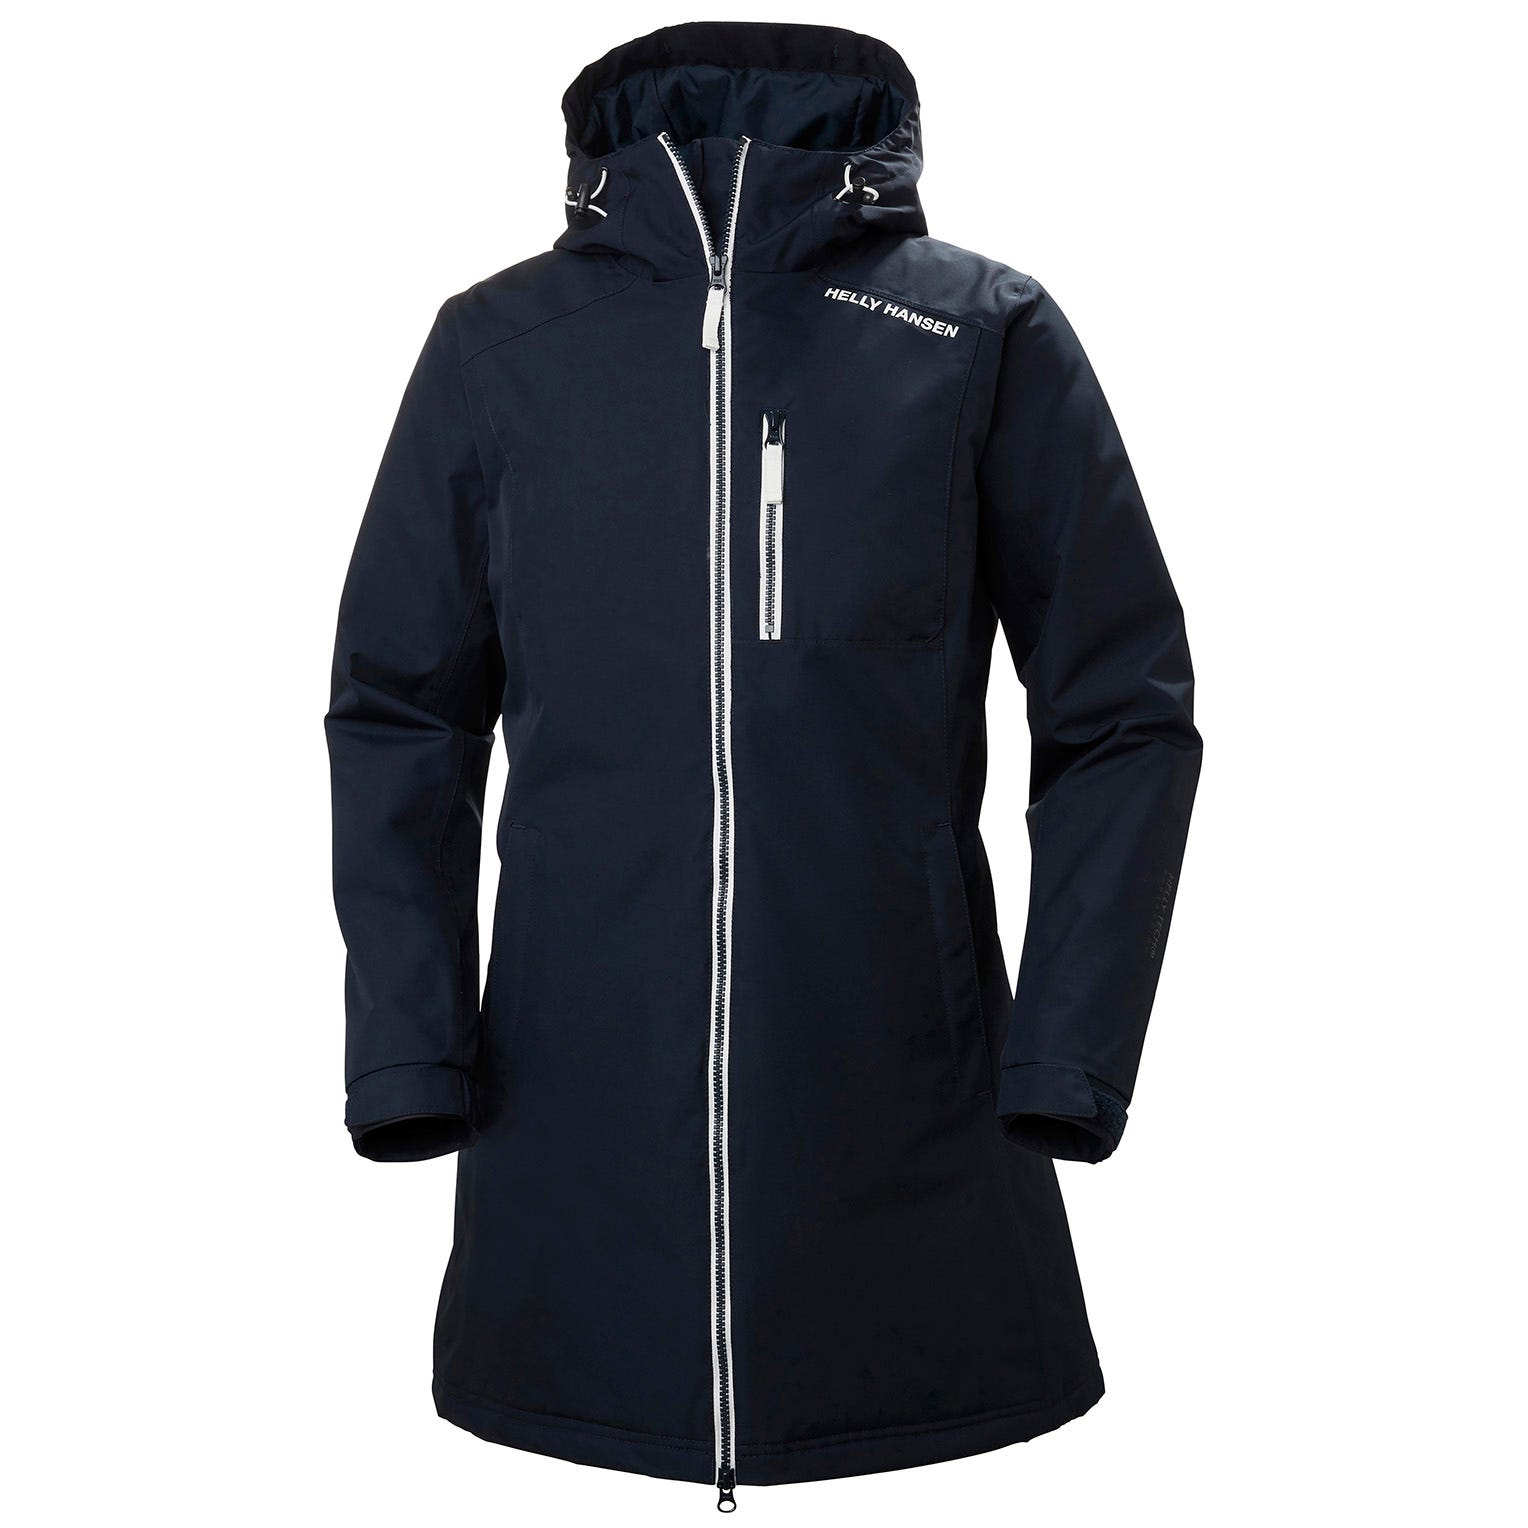 Womens Long Belfast Insulated Winter Jacket | Helly Hansen Womens Parka Navy XS